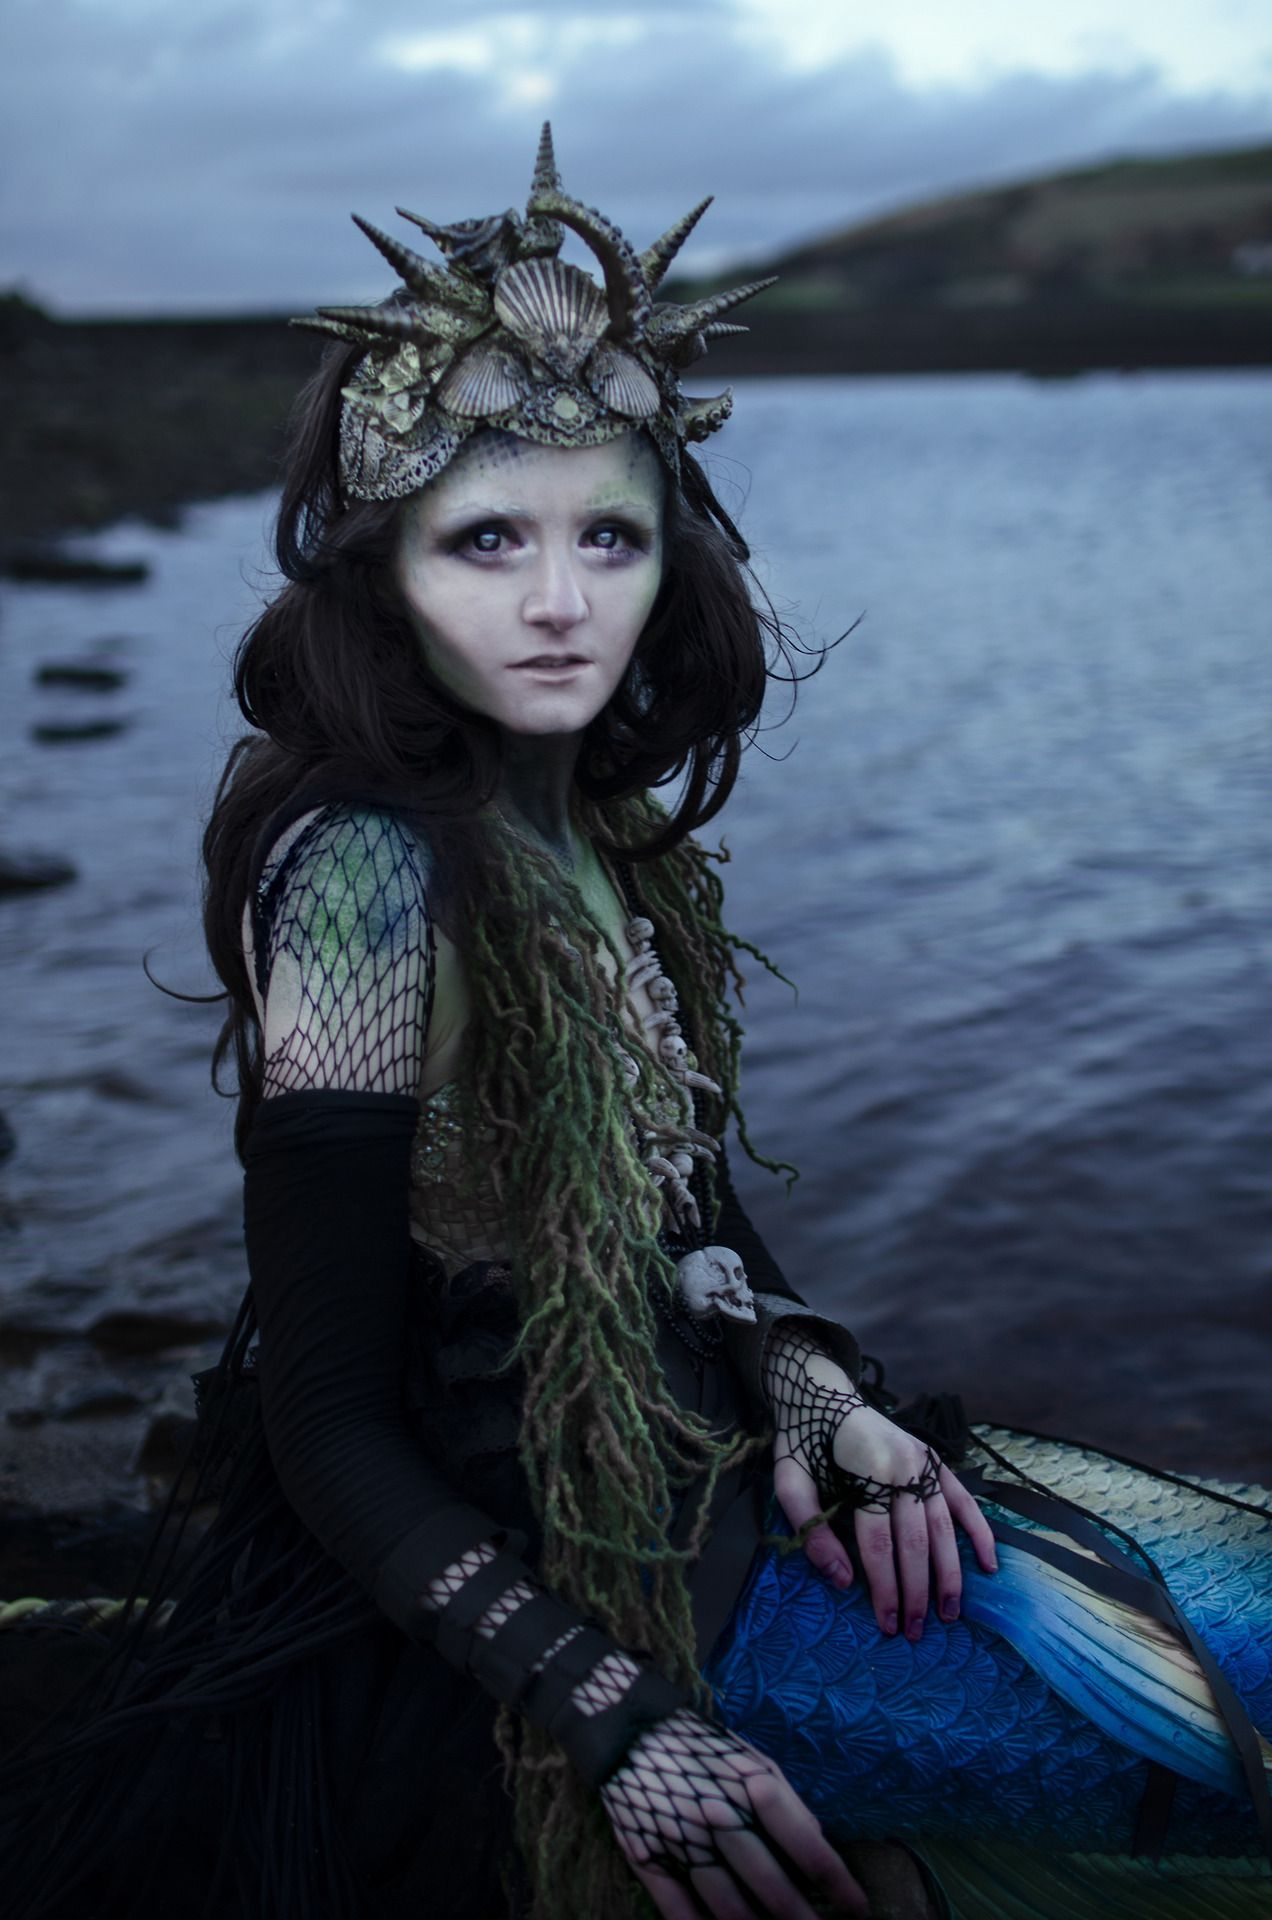 Katelizabeth ( via Dark Beauty Magazine) | Sea witch, Witches and ...